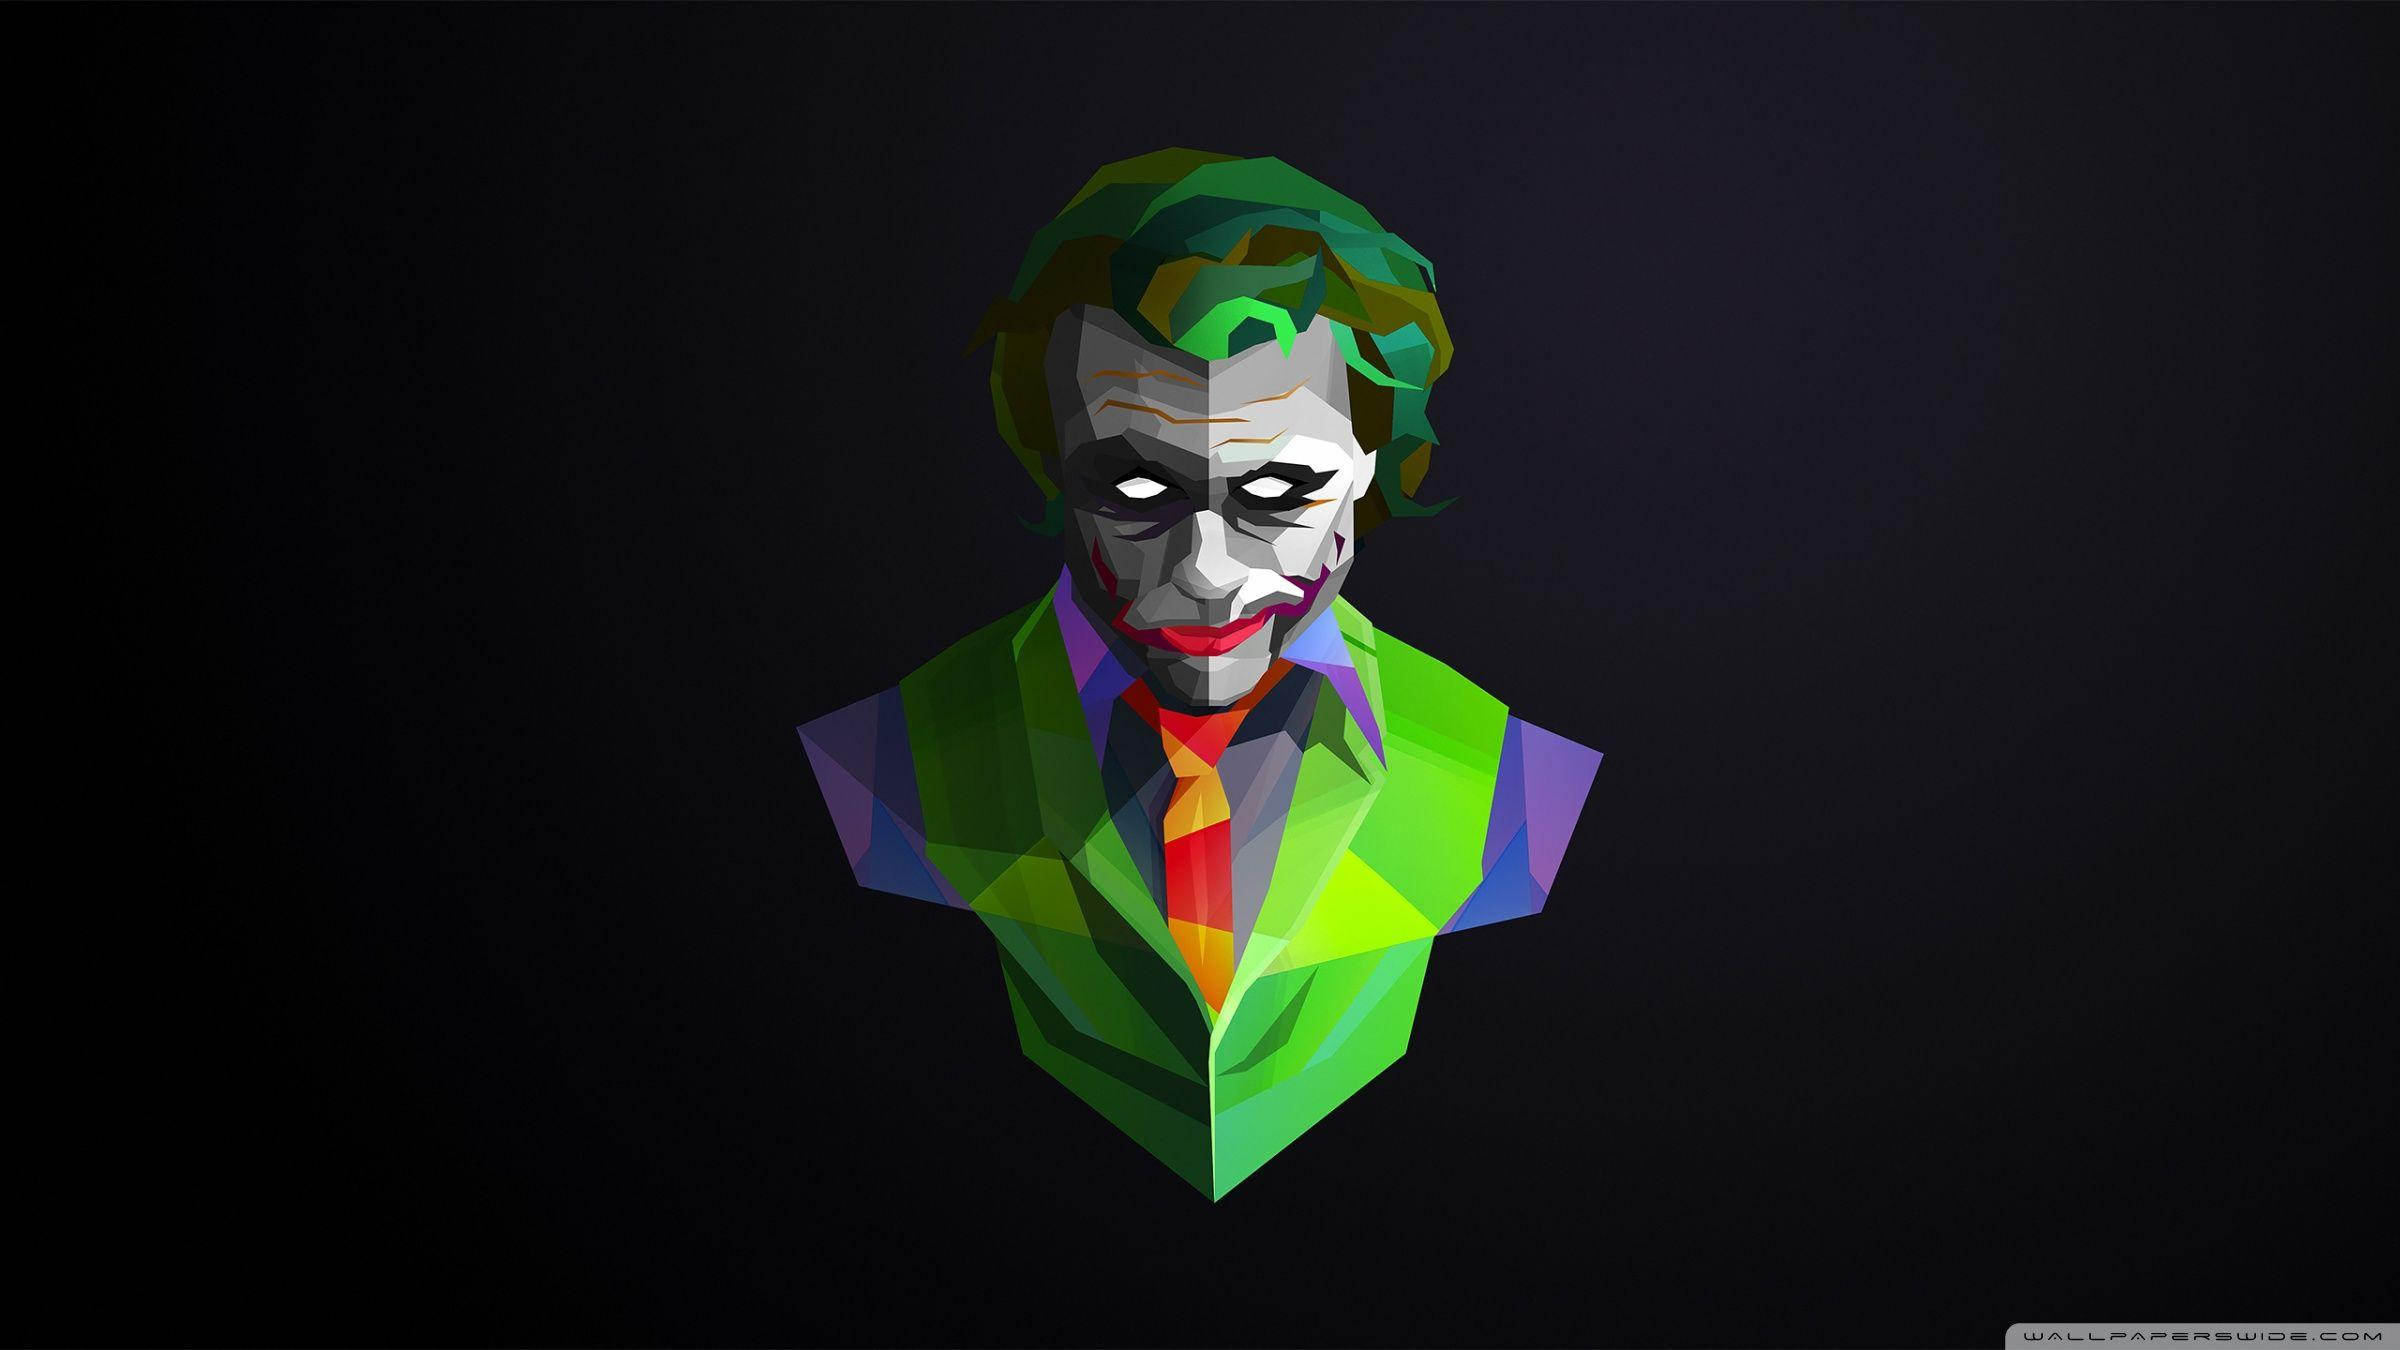 Cool Joker Wallpapers Wallpaper Cave